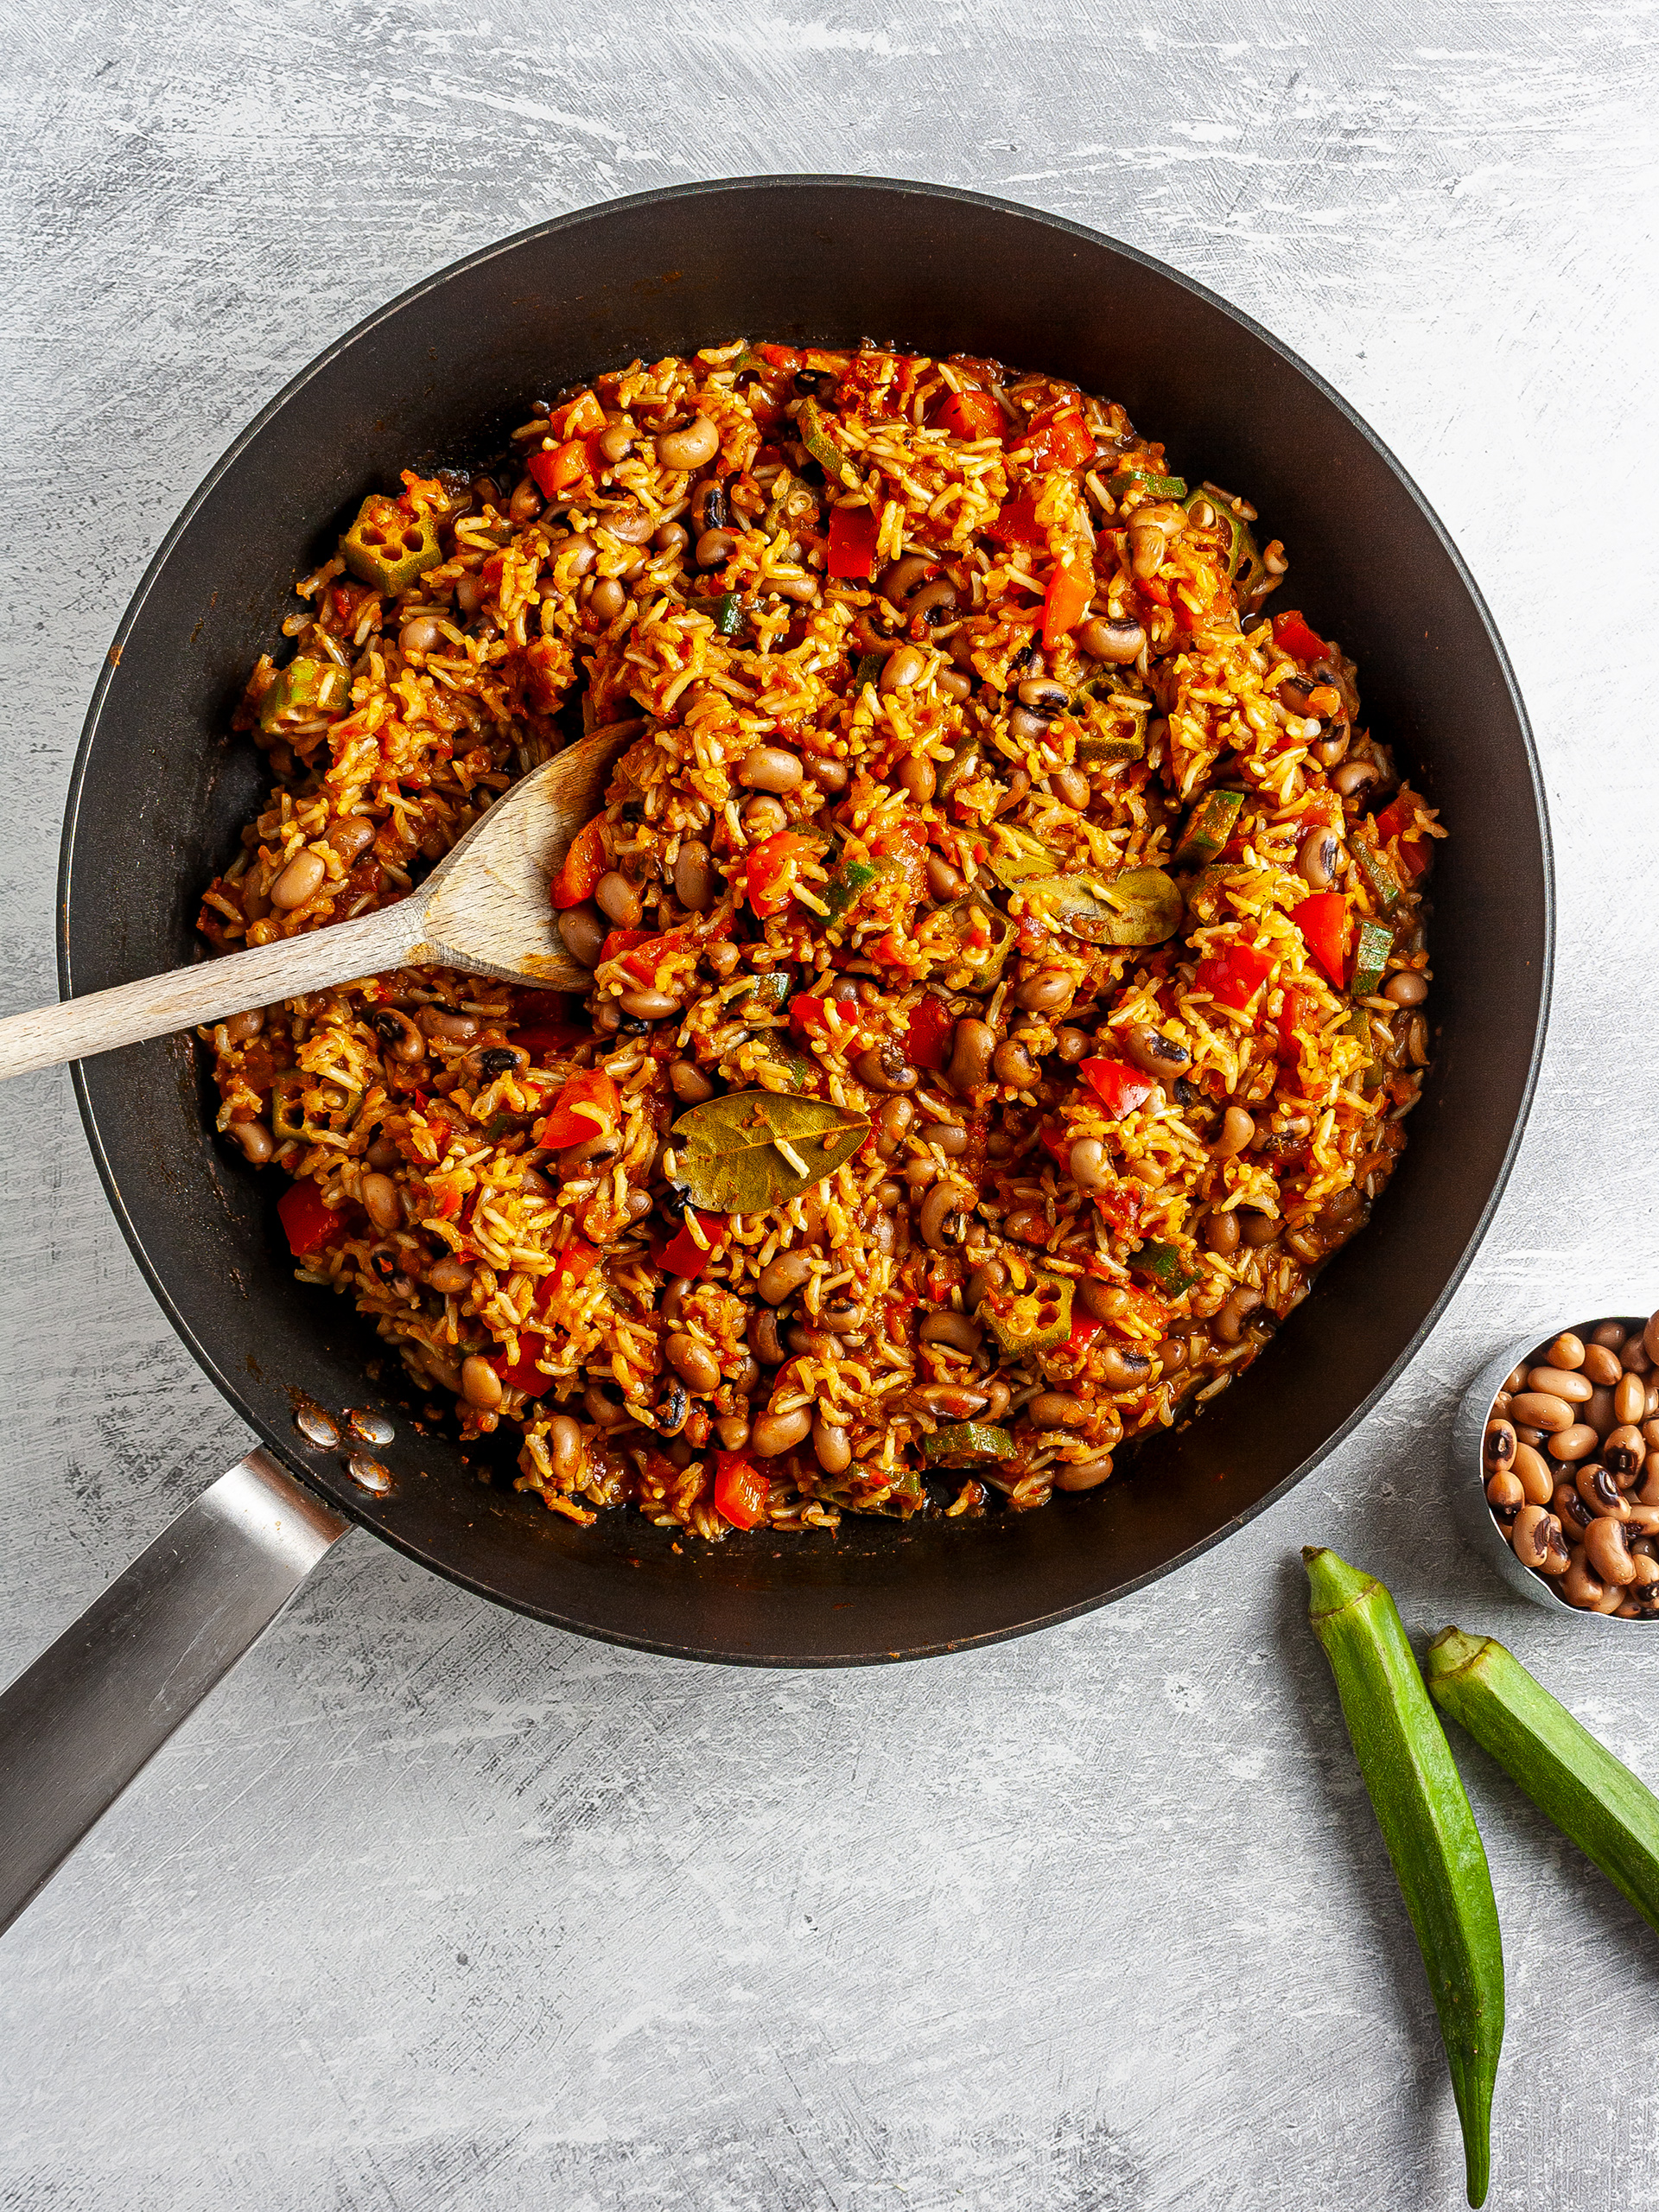 Jollof rice with black-eyed peas and okra